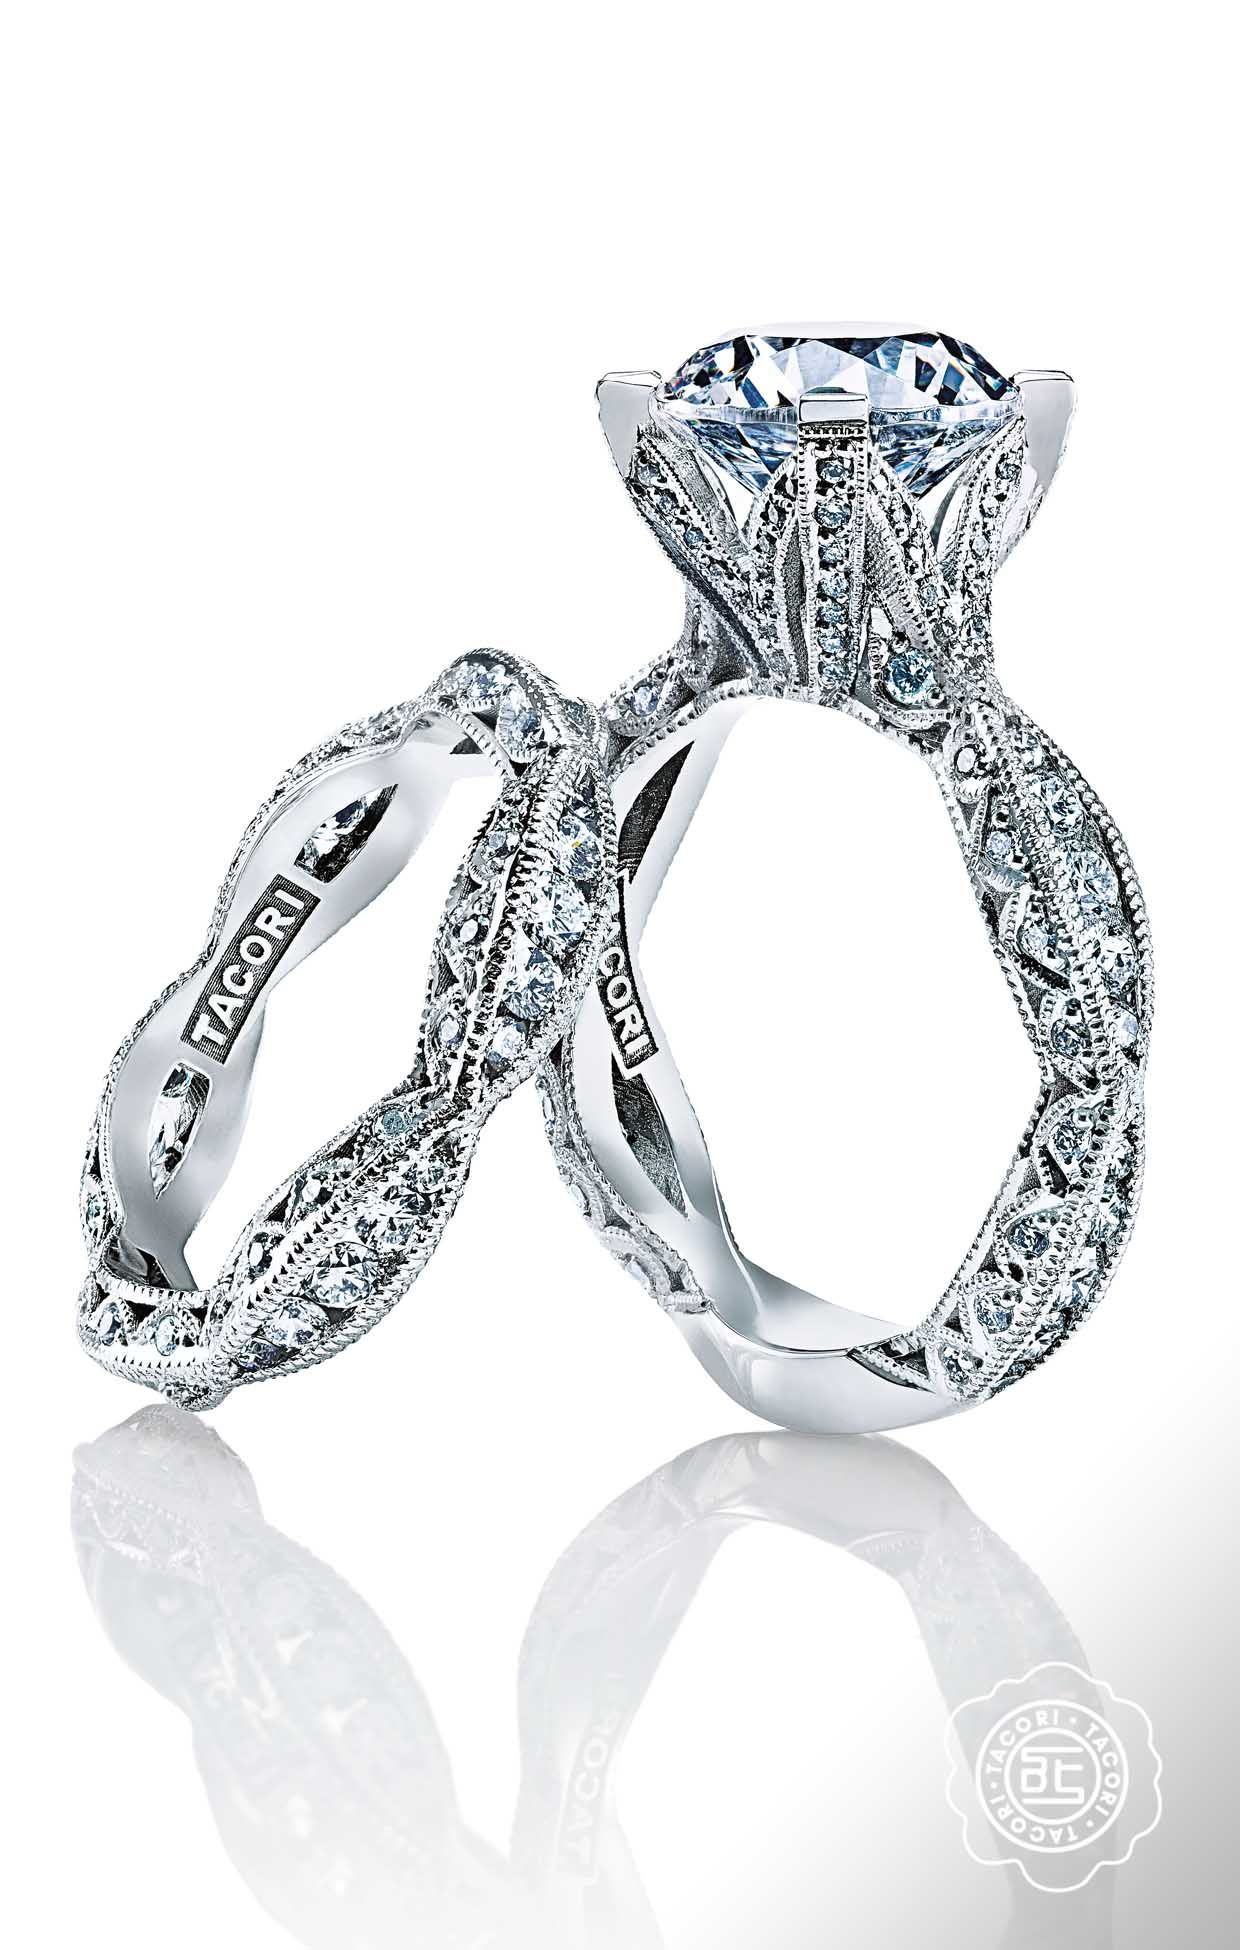 images bands our rings style look and cinderella wedding want best on princess engagement like this disney we anidele to